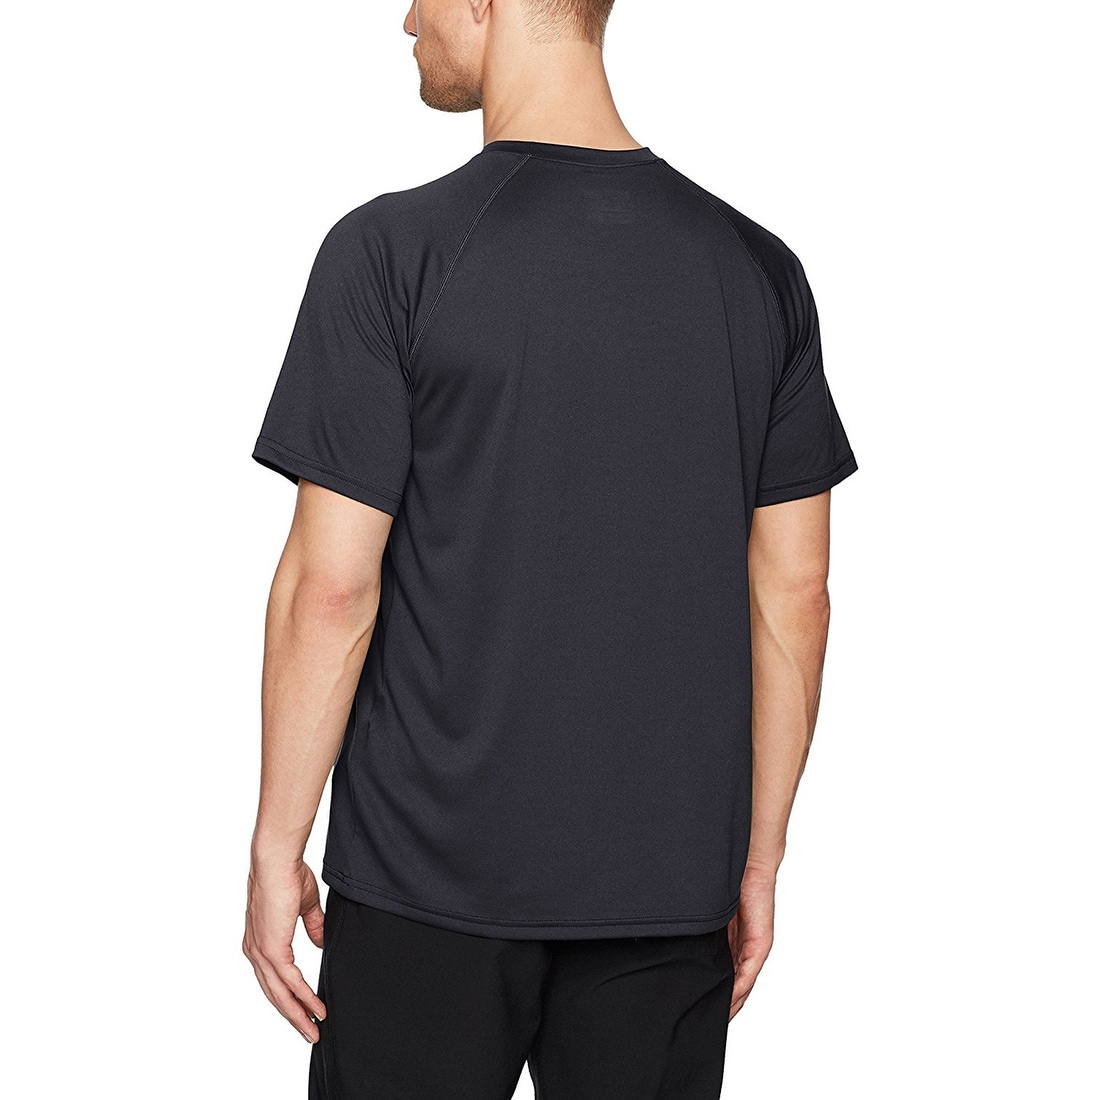 cec9ace0c9df Shop Under Armour Men s Tactical Tech Short Sleeve T-Shirt (Black ...